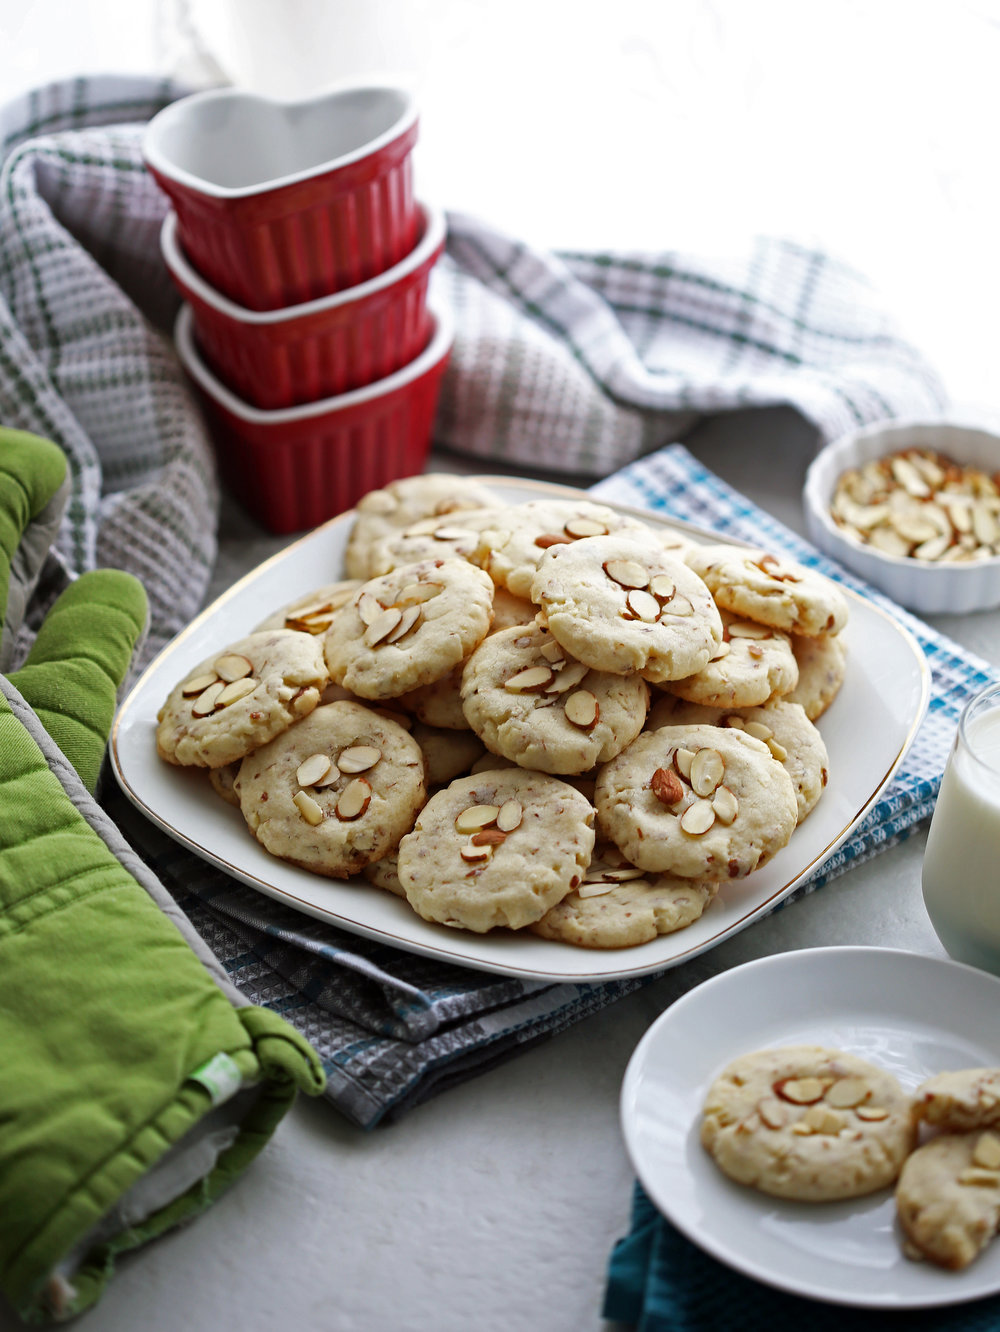 Crunchy almond cookies on a white plate.